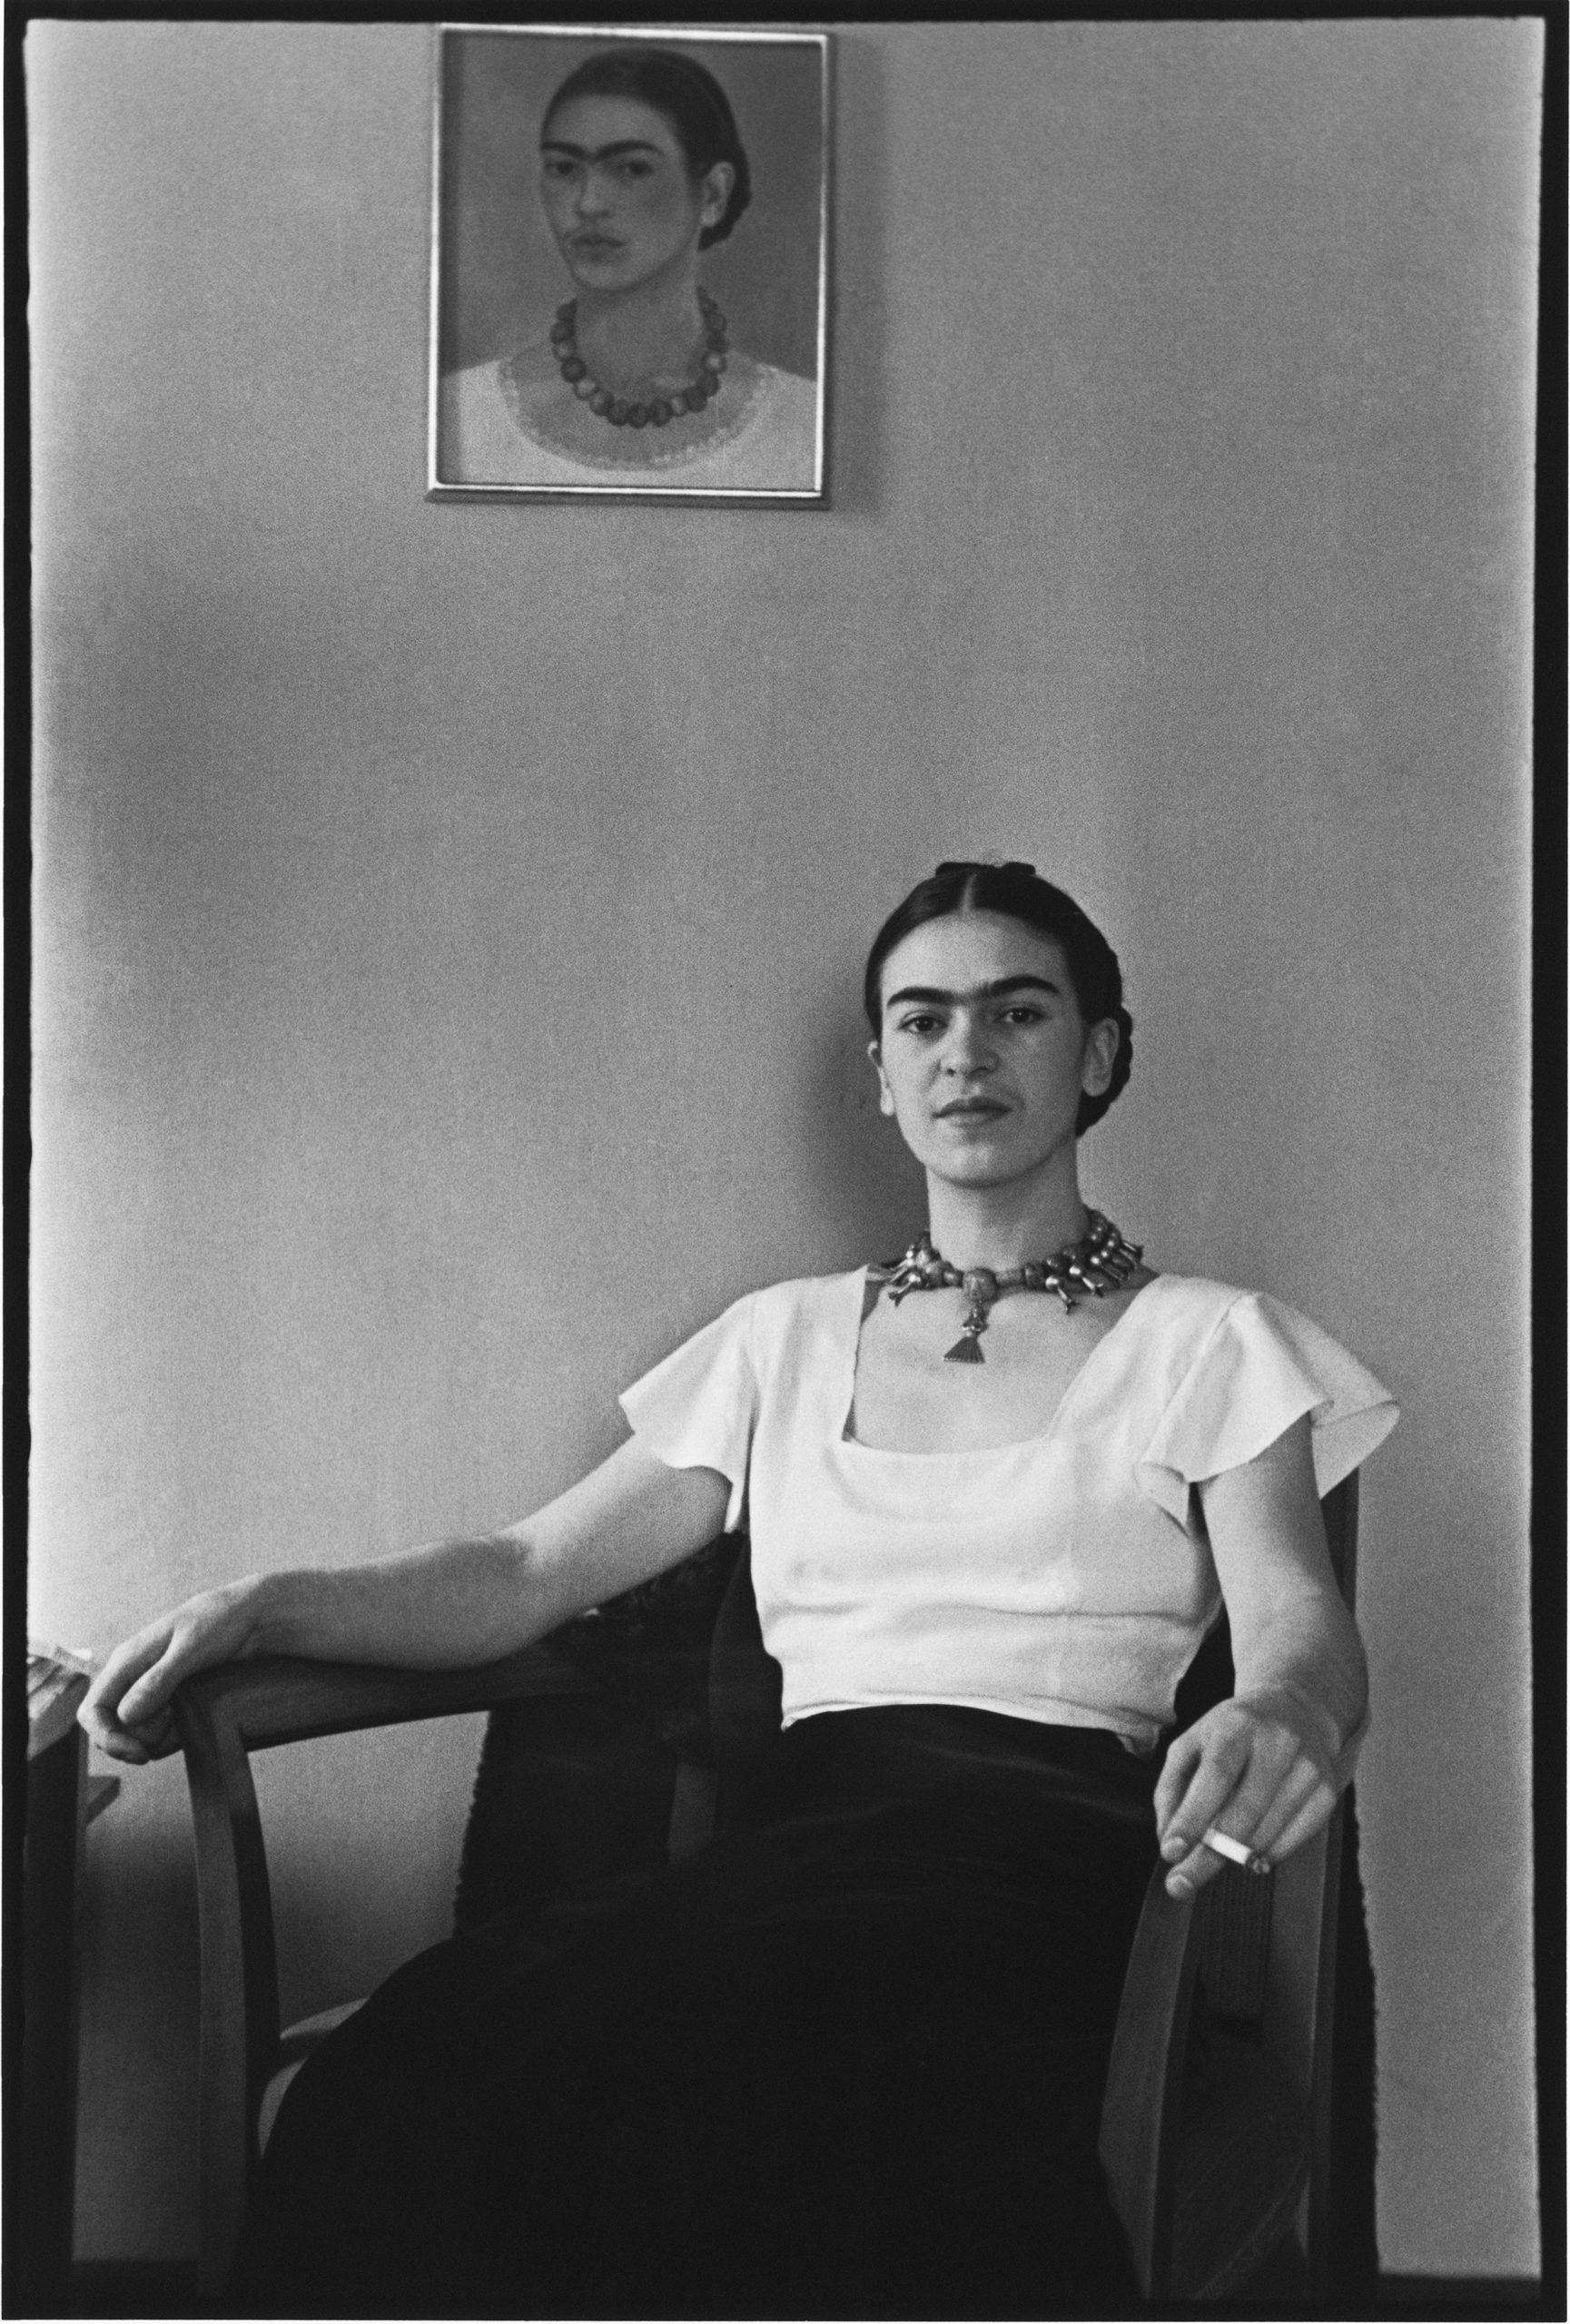 Frida at the Barbizon Plaza Hotel, NYC, 1933 (©LUCIENNE BLOCH, COURTESY GALERIE DE L'INSTANT, PARIS)